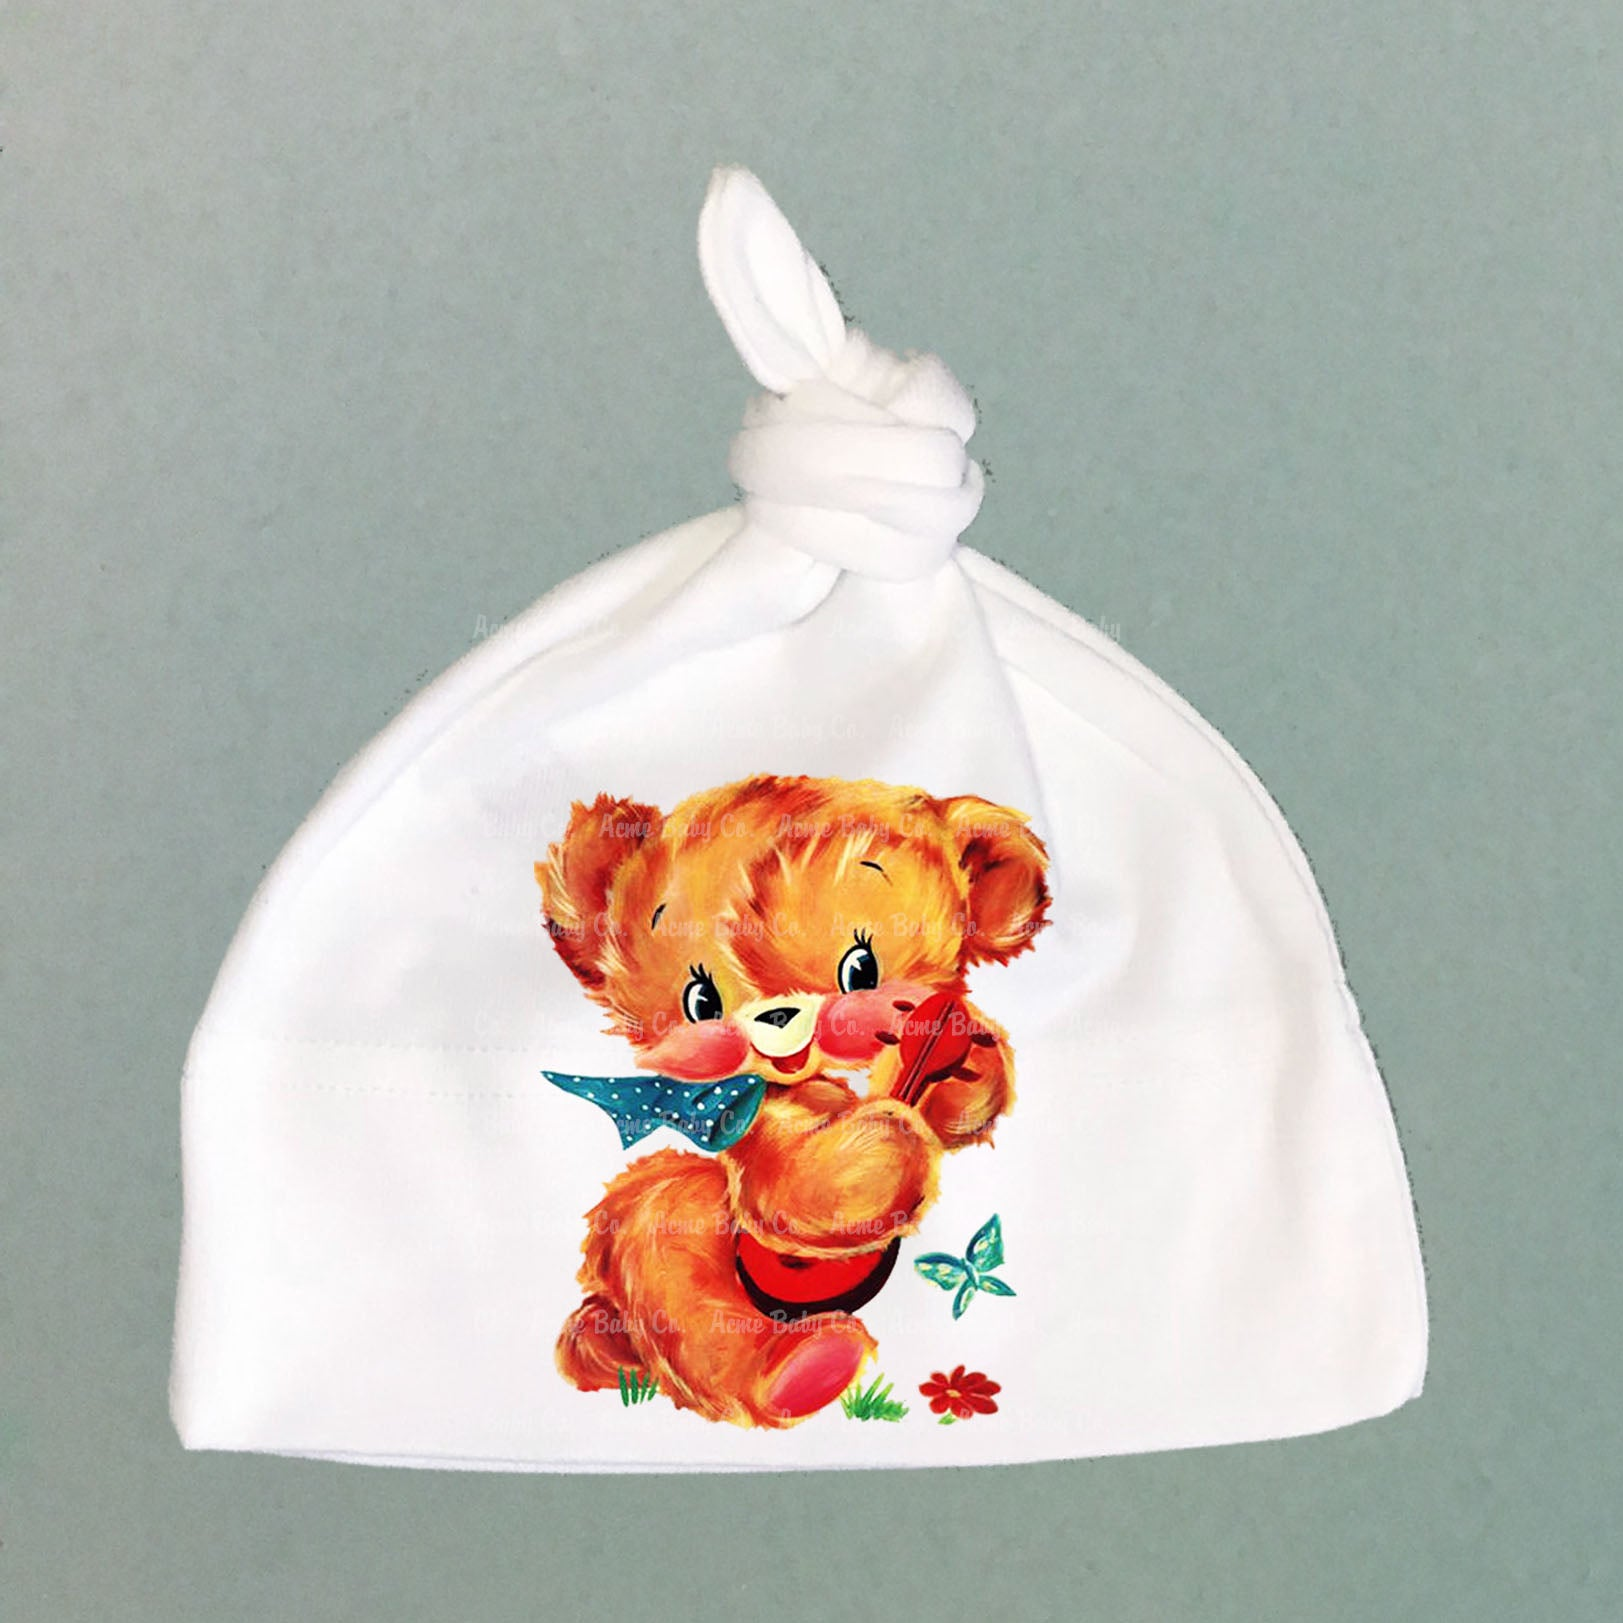 Banjo Bear Organic Cotton Baby Knit Cap